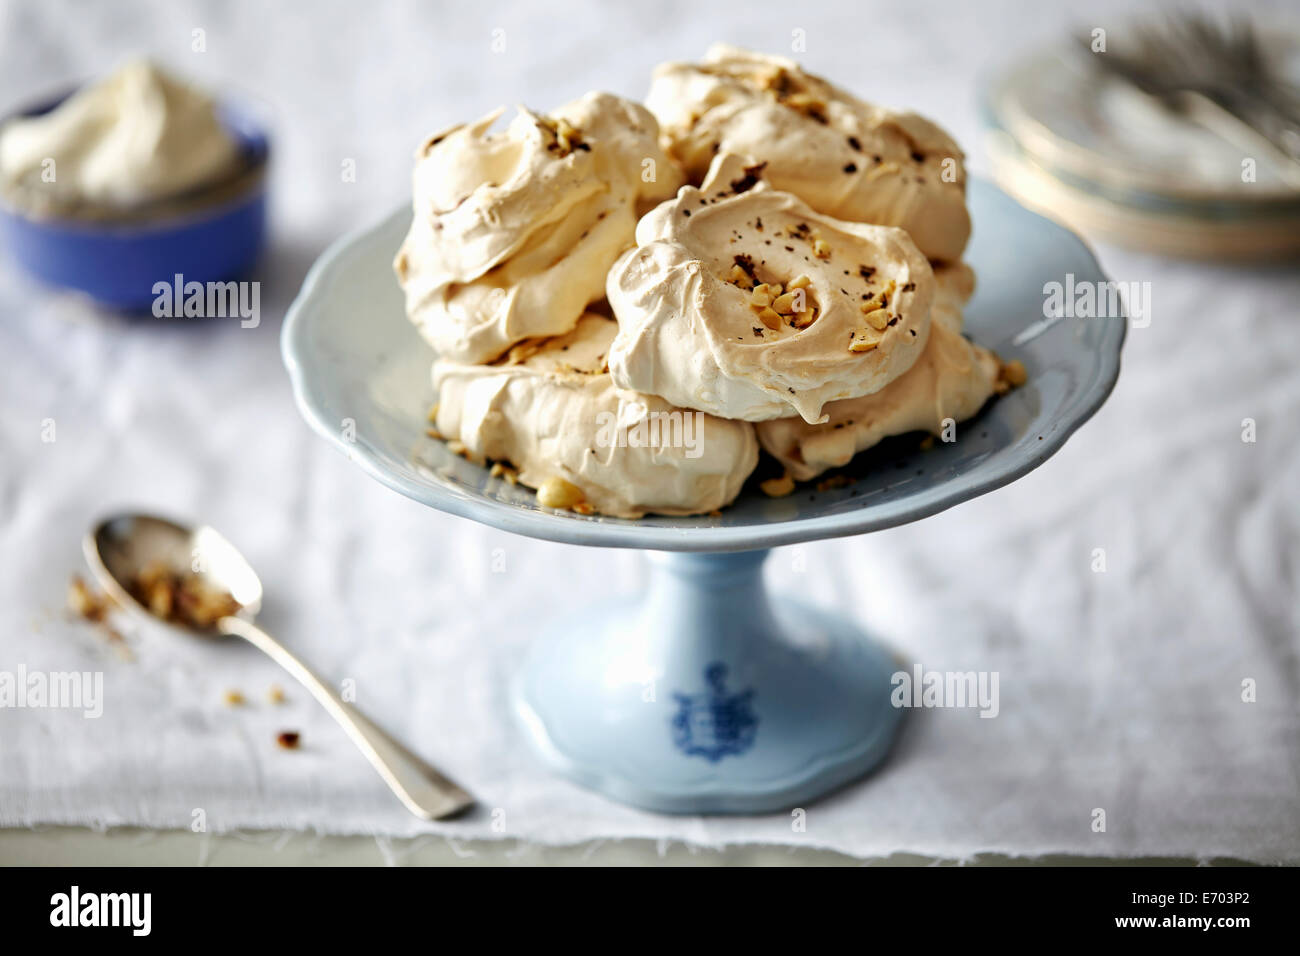 Hazelnut meringue on desert plate - Stock Image